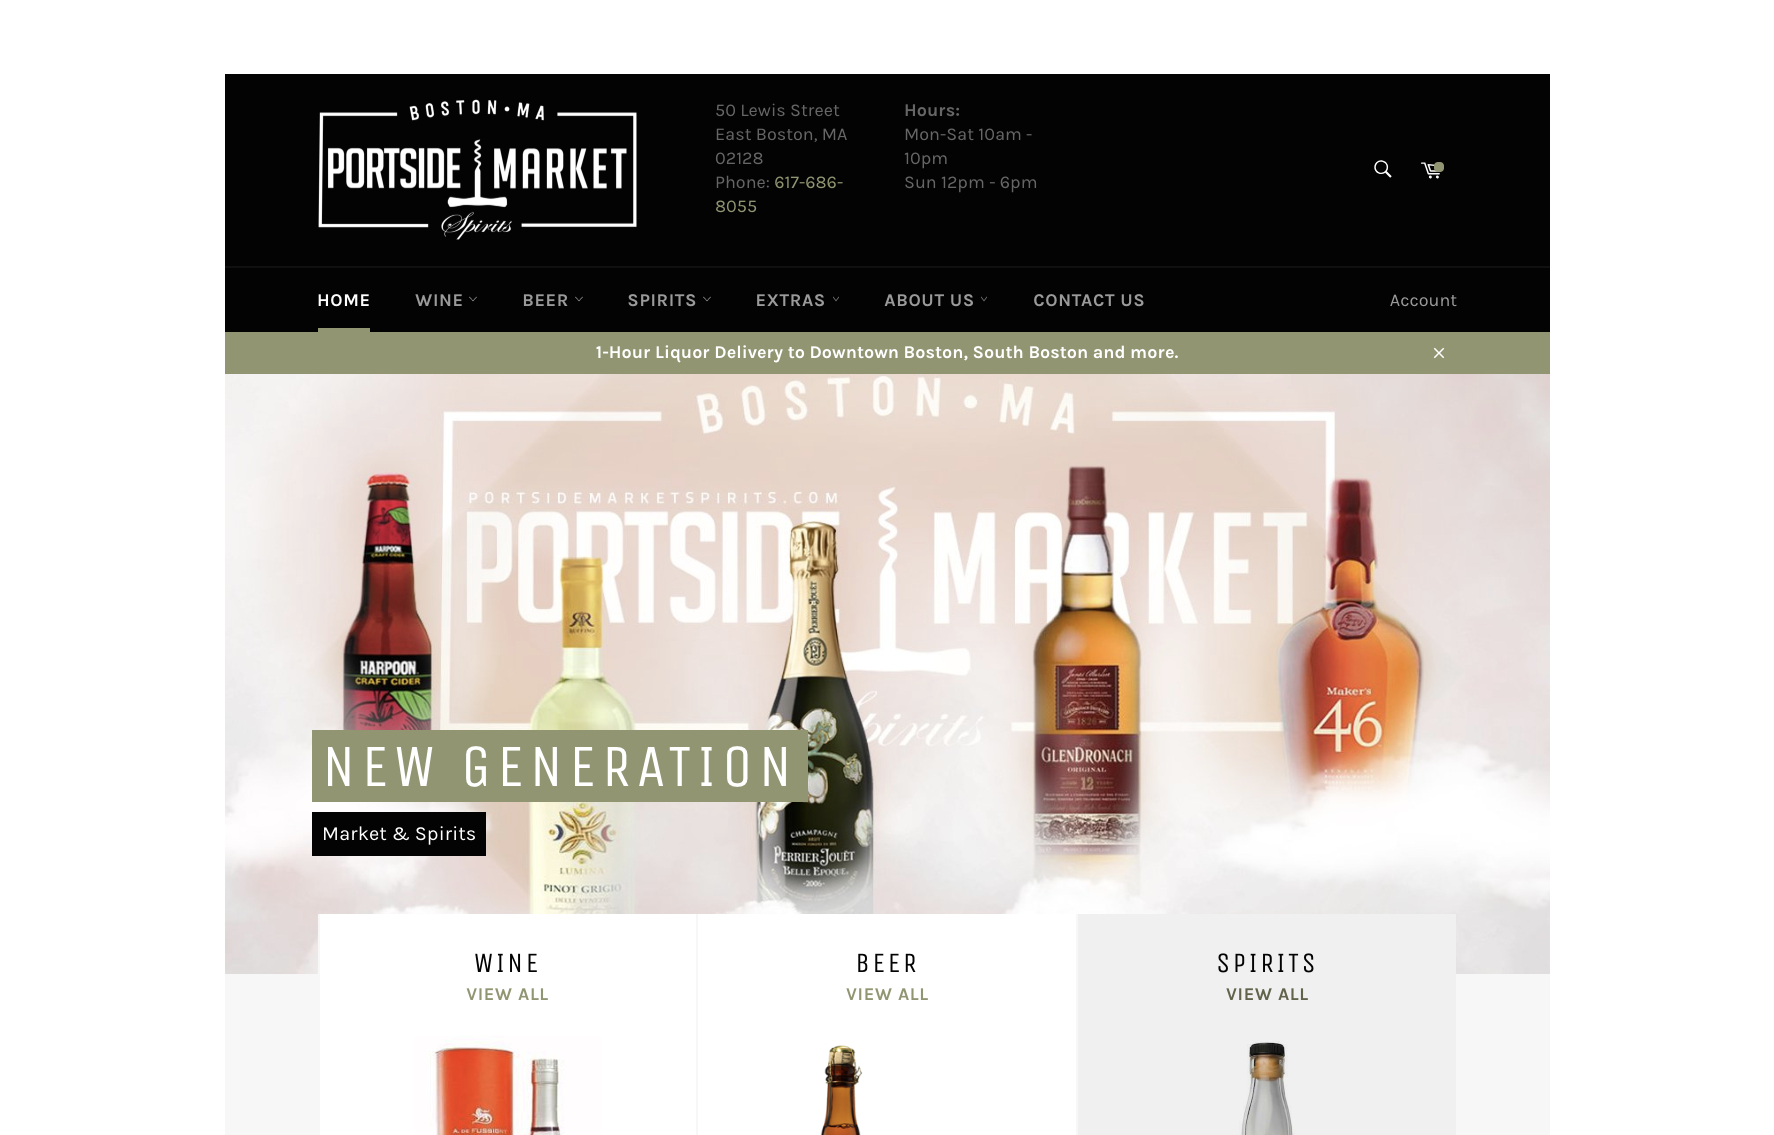 portsidemarketspirits.com